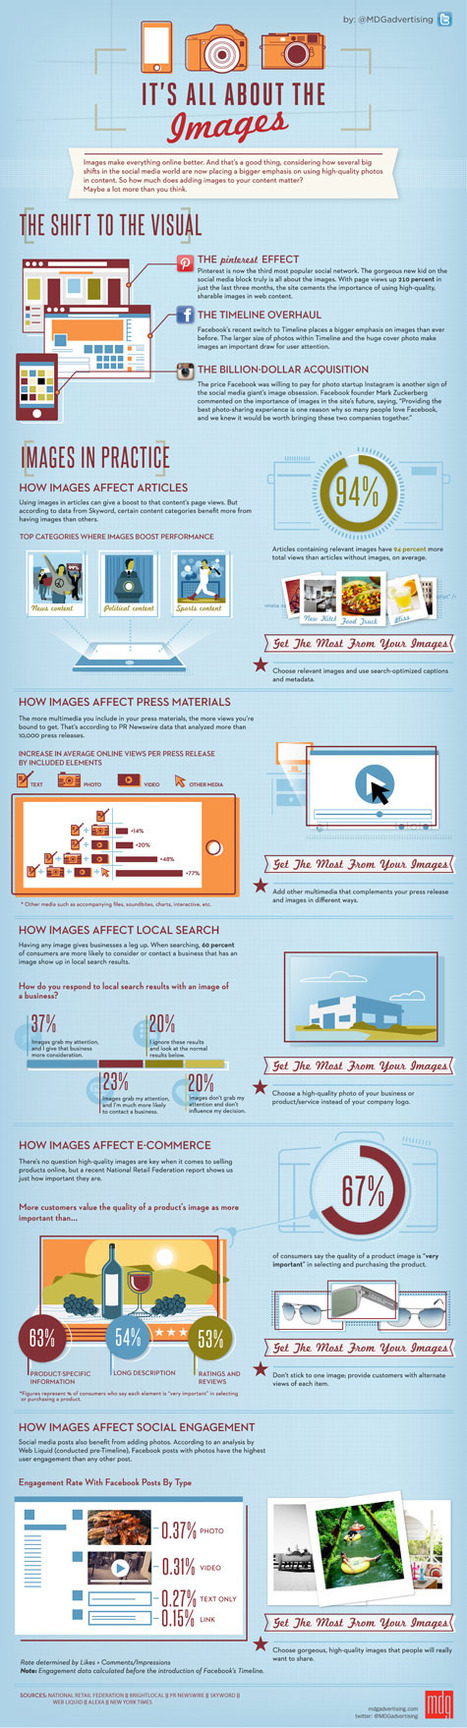 It's All About the Images [Infographic] | e-marketing and design | Scoop.it